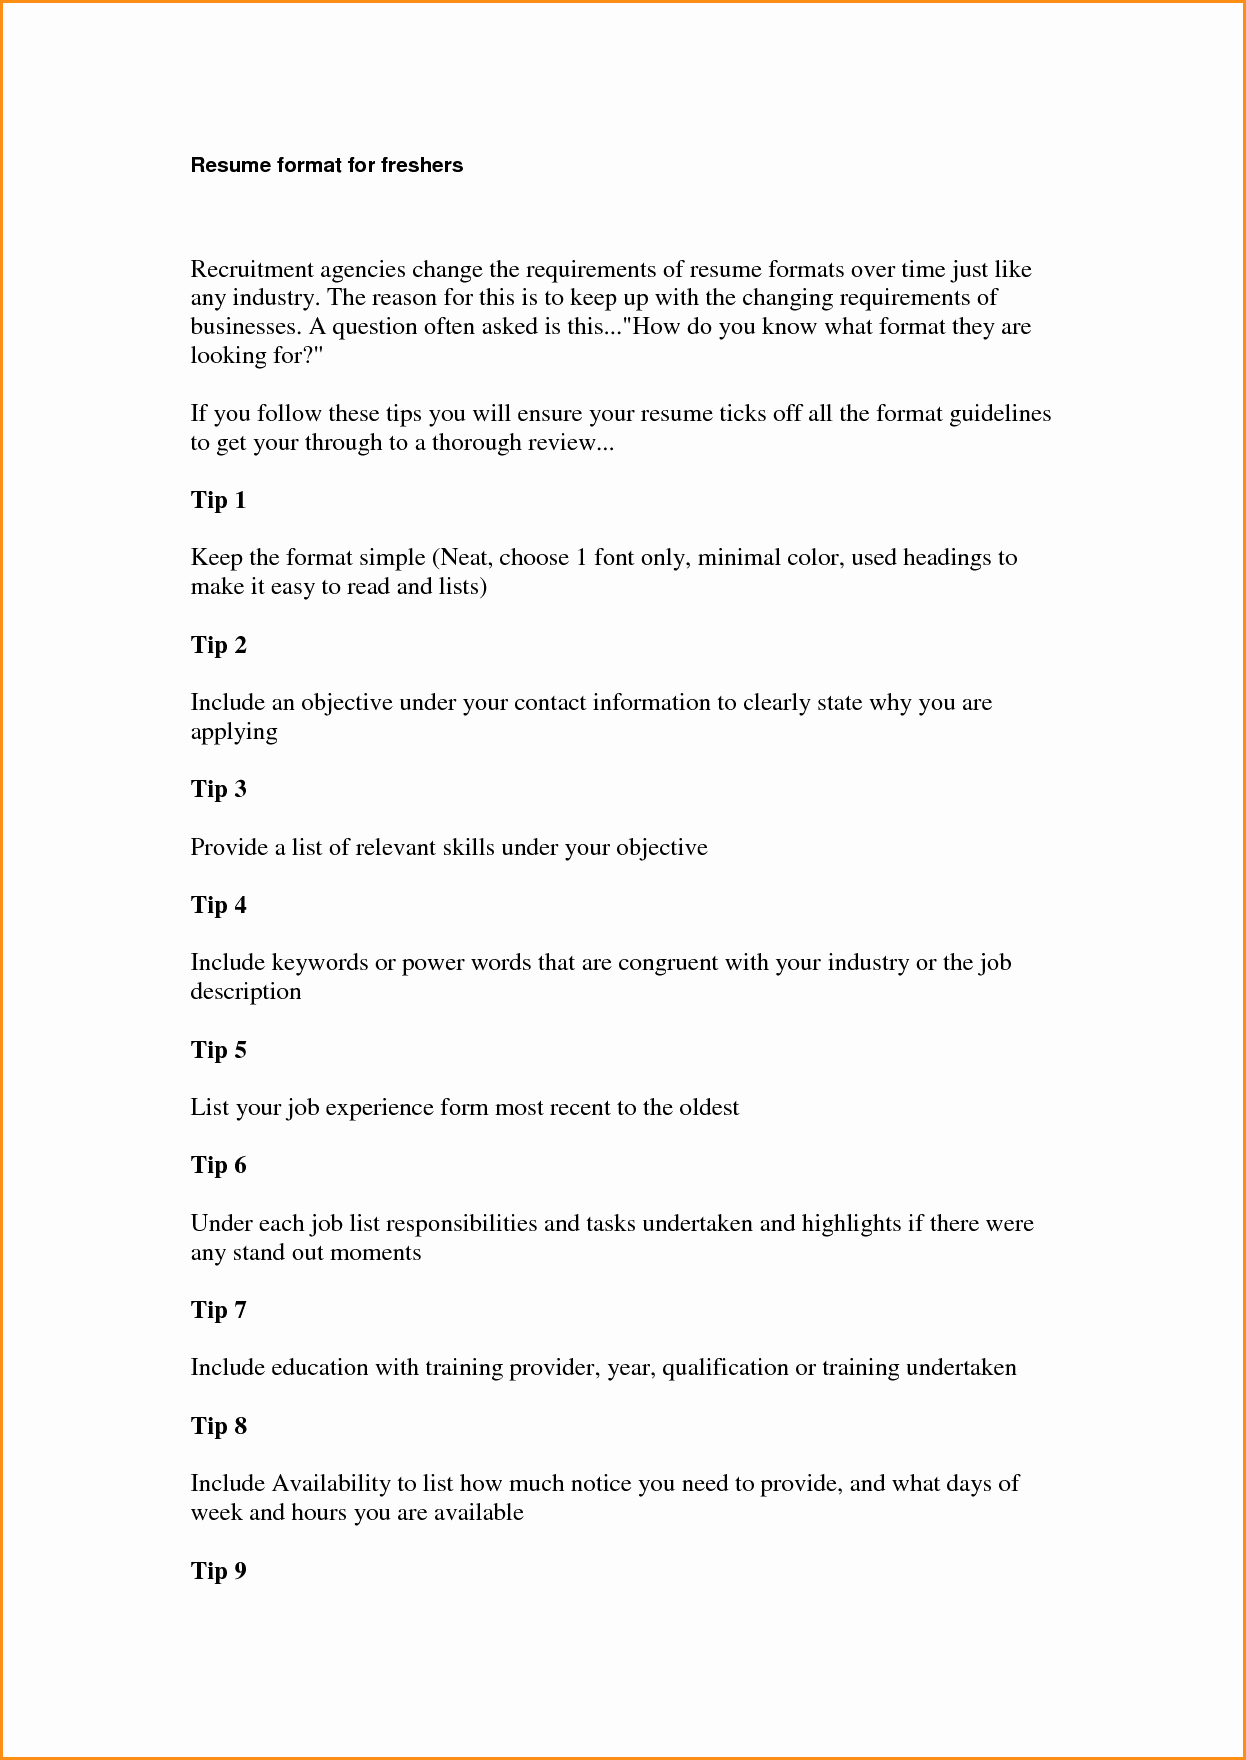 A Template for A Resume Elegant 11 Freshers Resume Samples In Word format